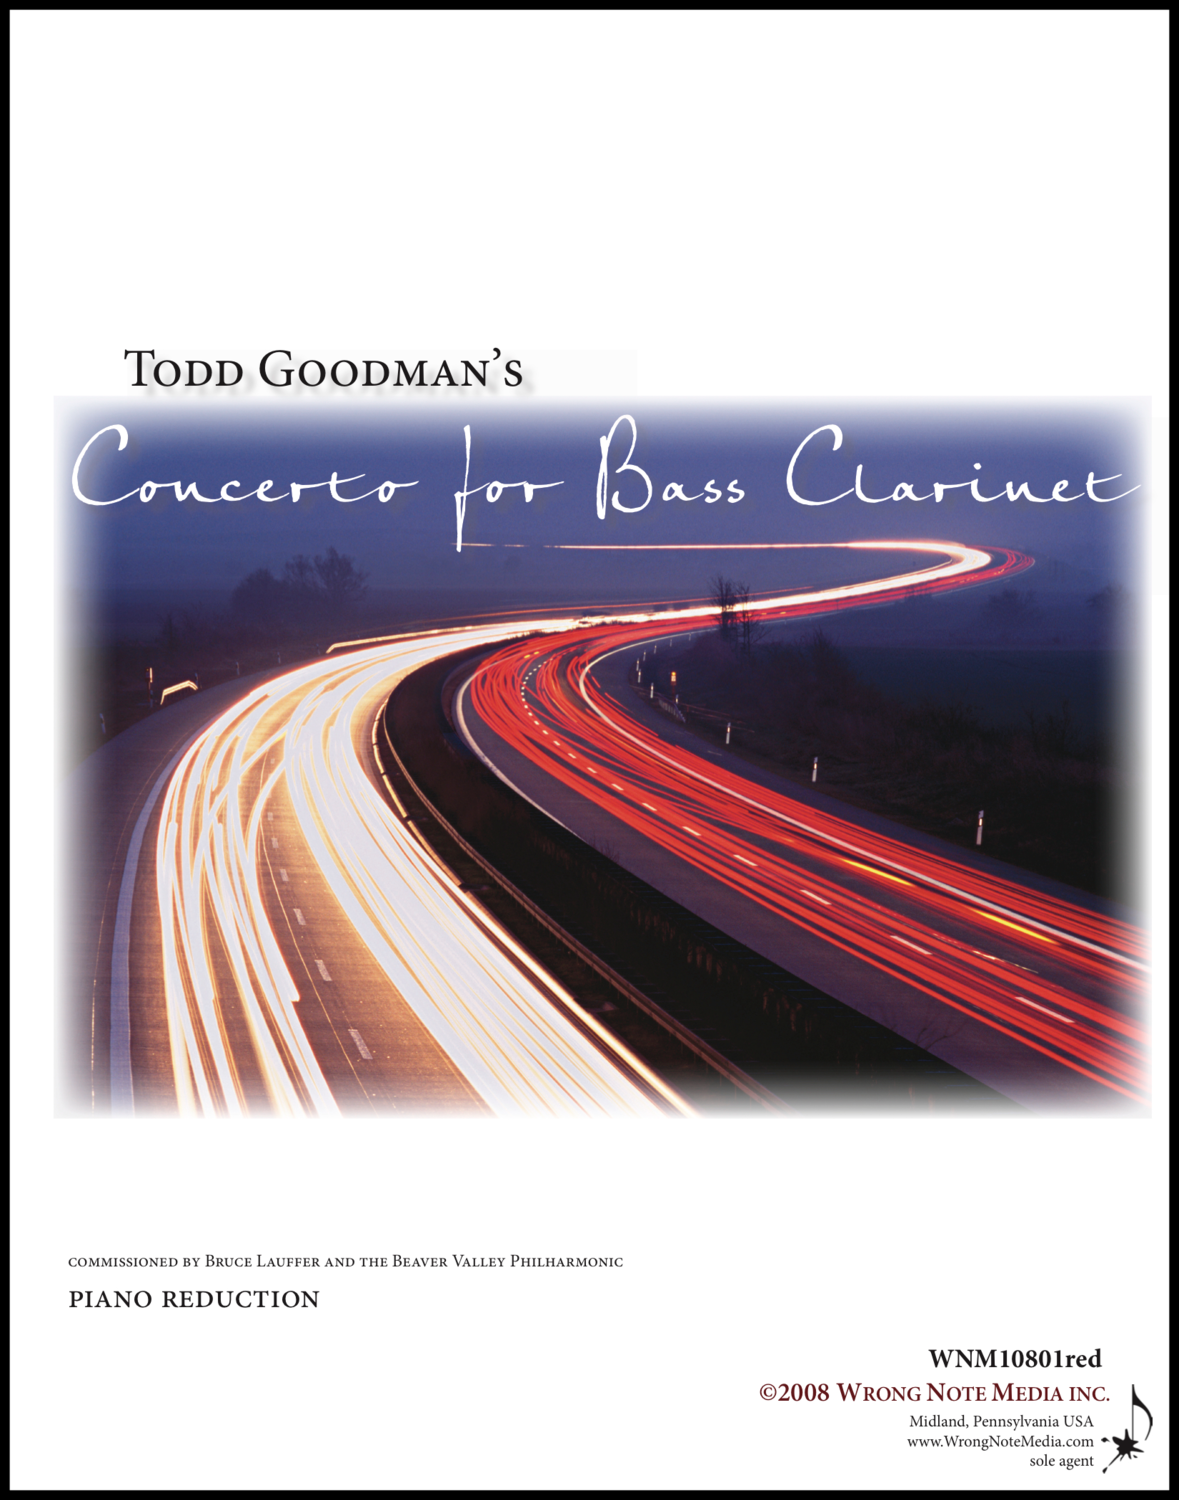 CONCERTO FOR BASS CLARINET AND ORCHESTRA by Todd Goodman